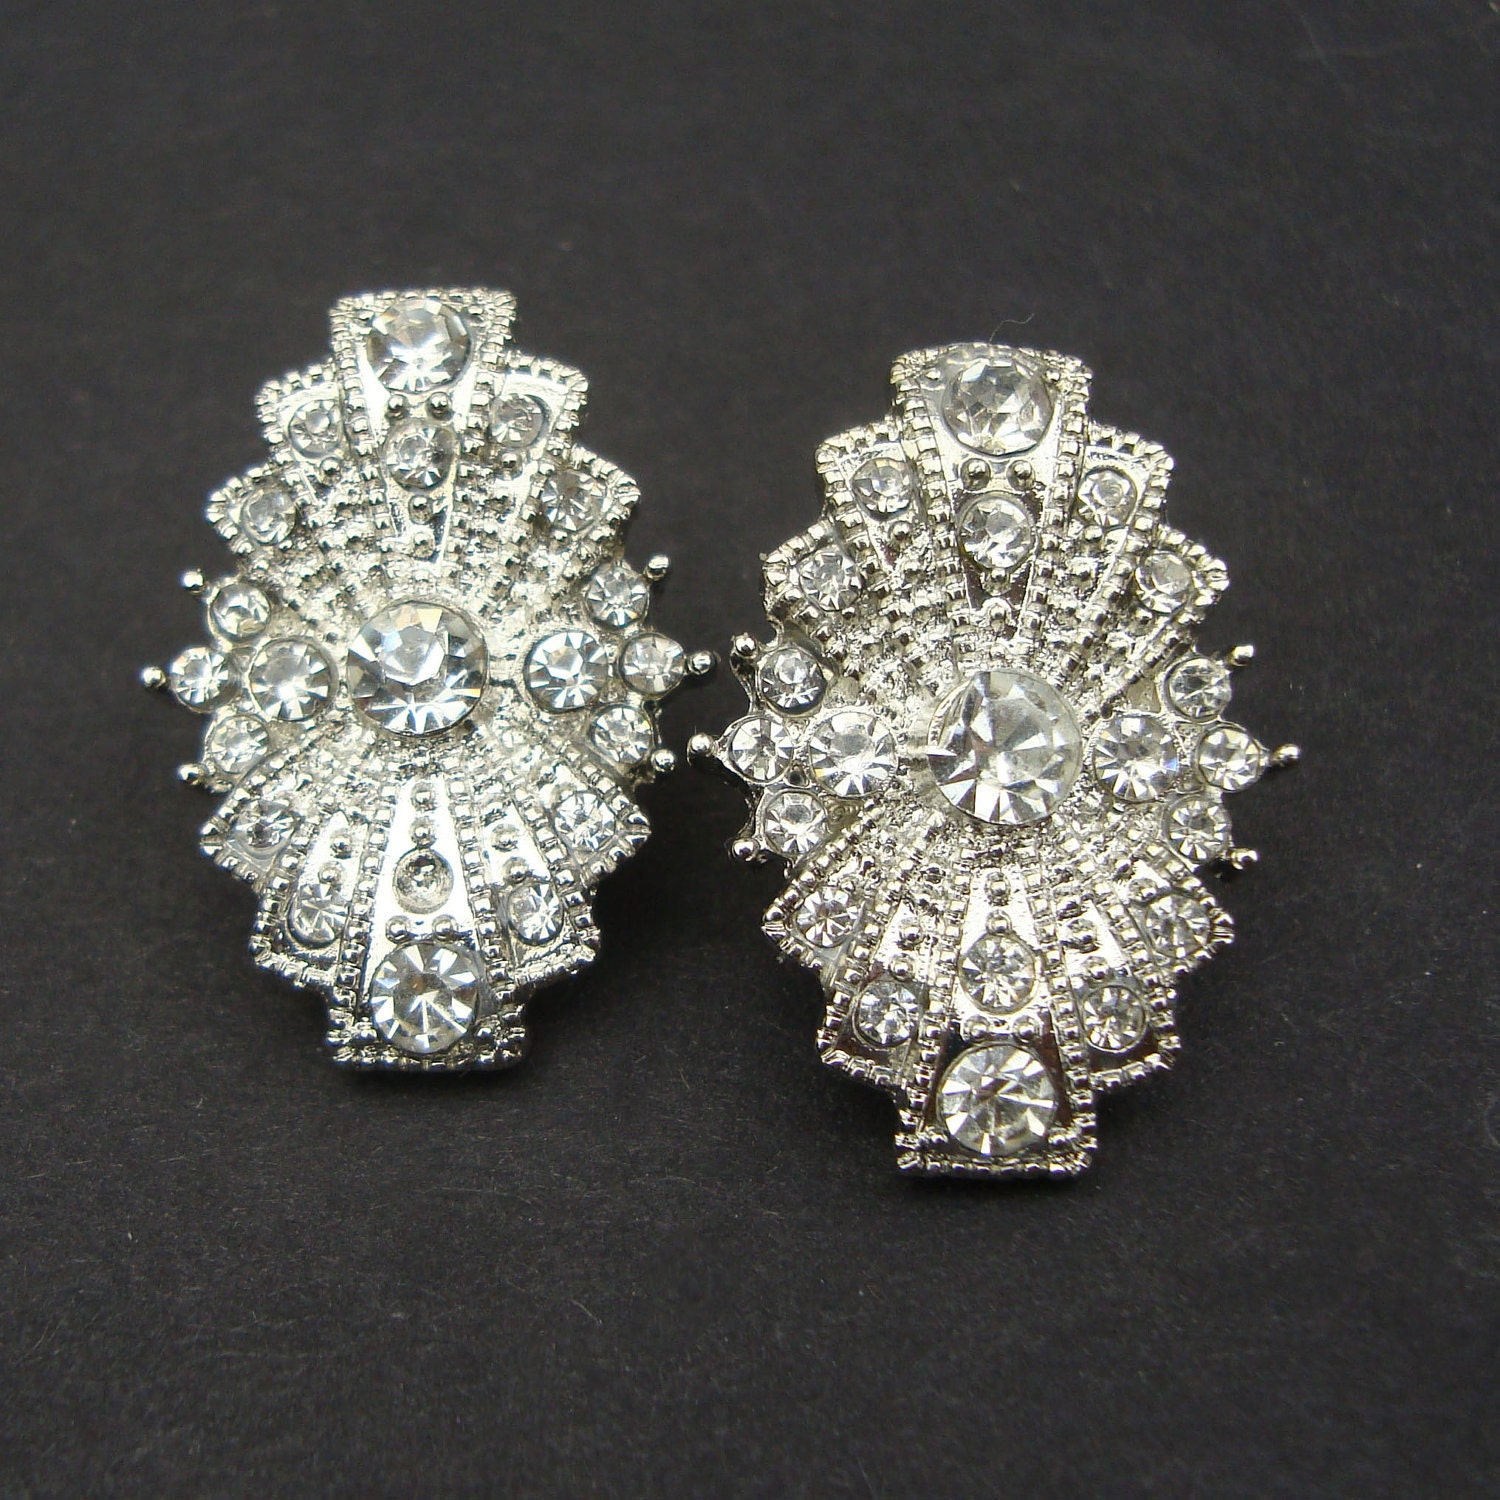 Art Deco Style Bridal Wedding Earrings Vintage Style